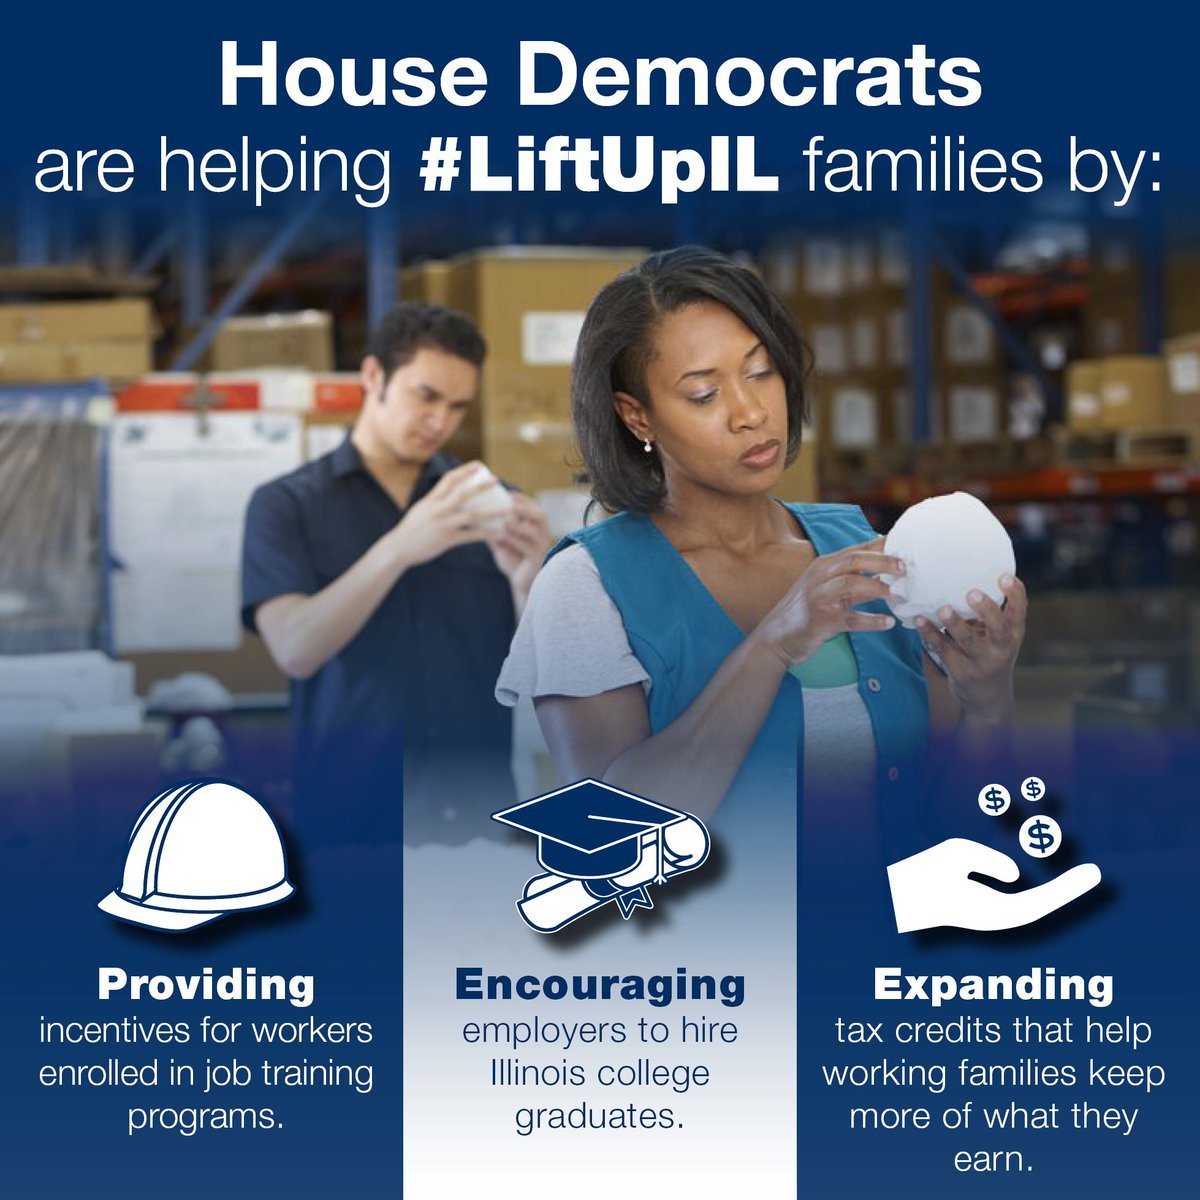 test Twitter Media - House Democrats passed legislation that fosters job creation and provides much-needed economic relief for working families. #LiftUpIL #twill https://t.co/53LQEA6ykD